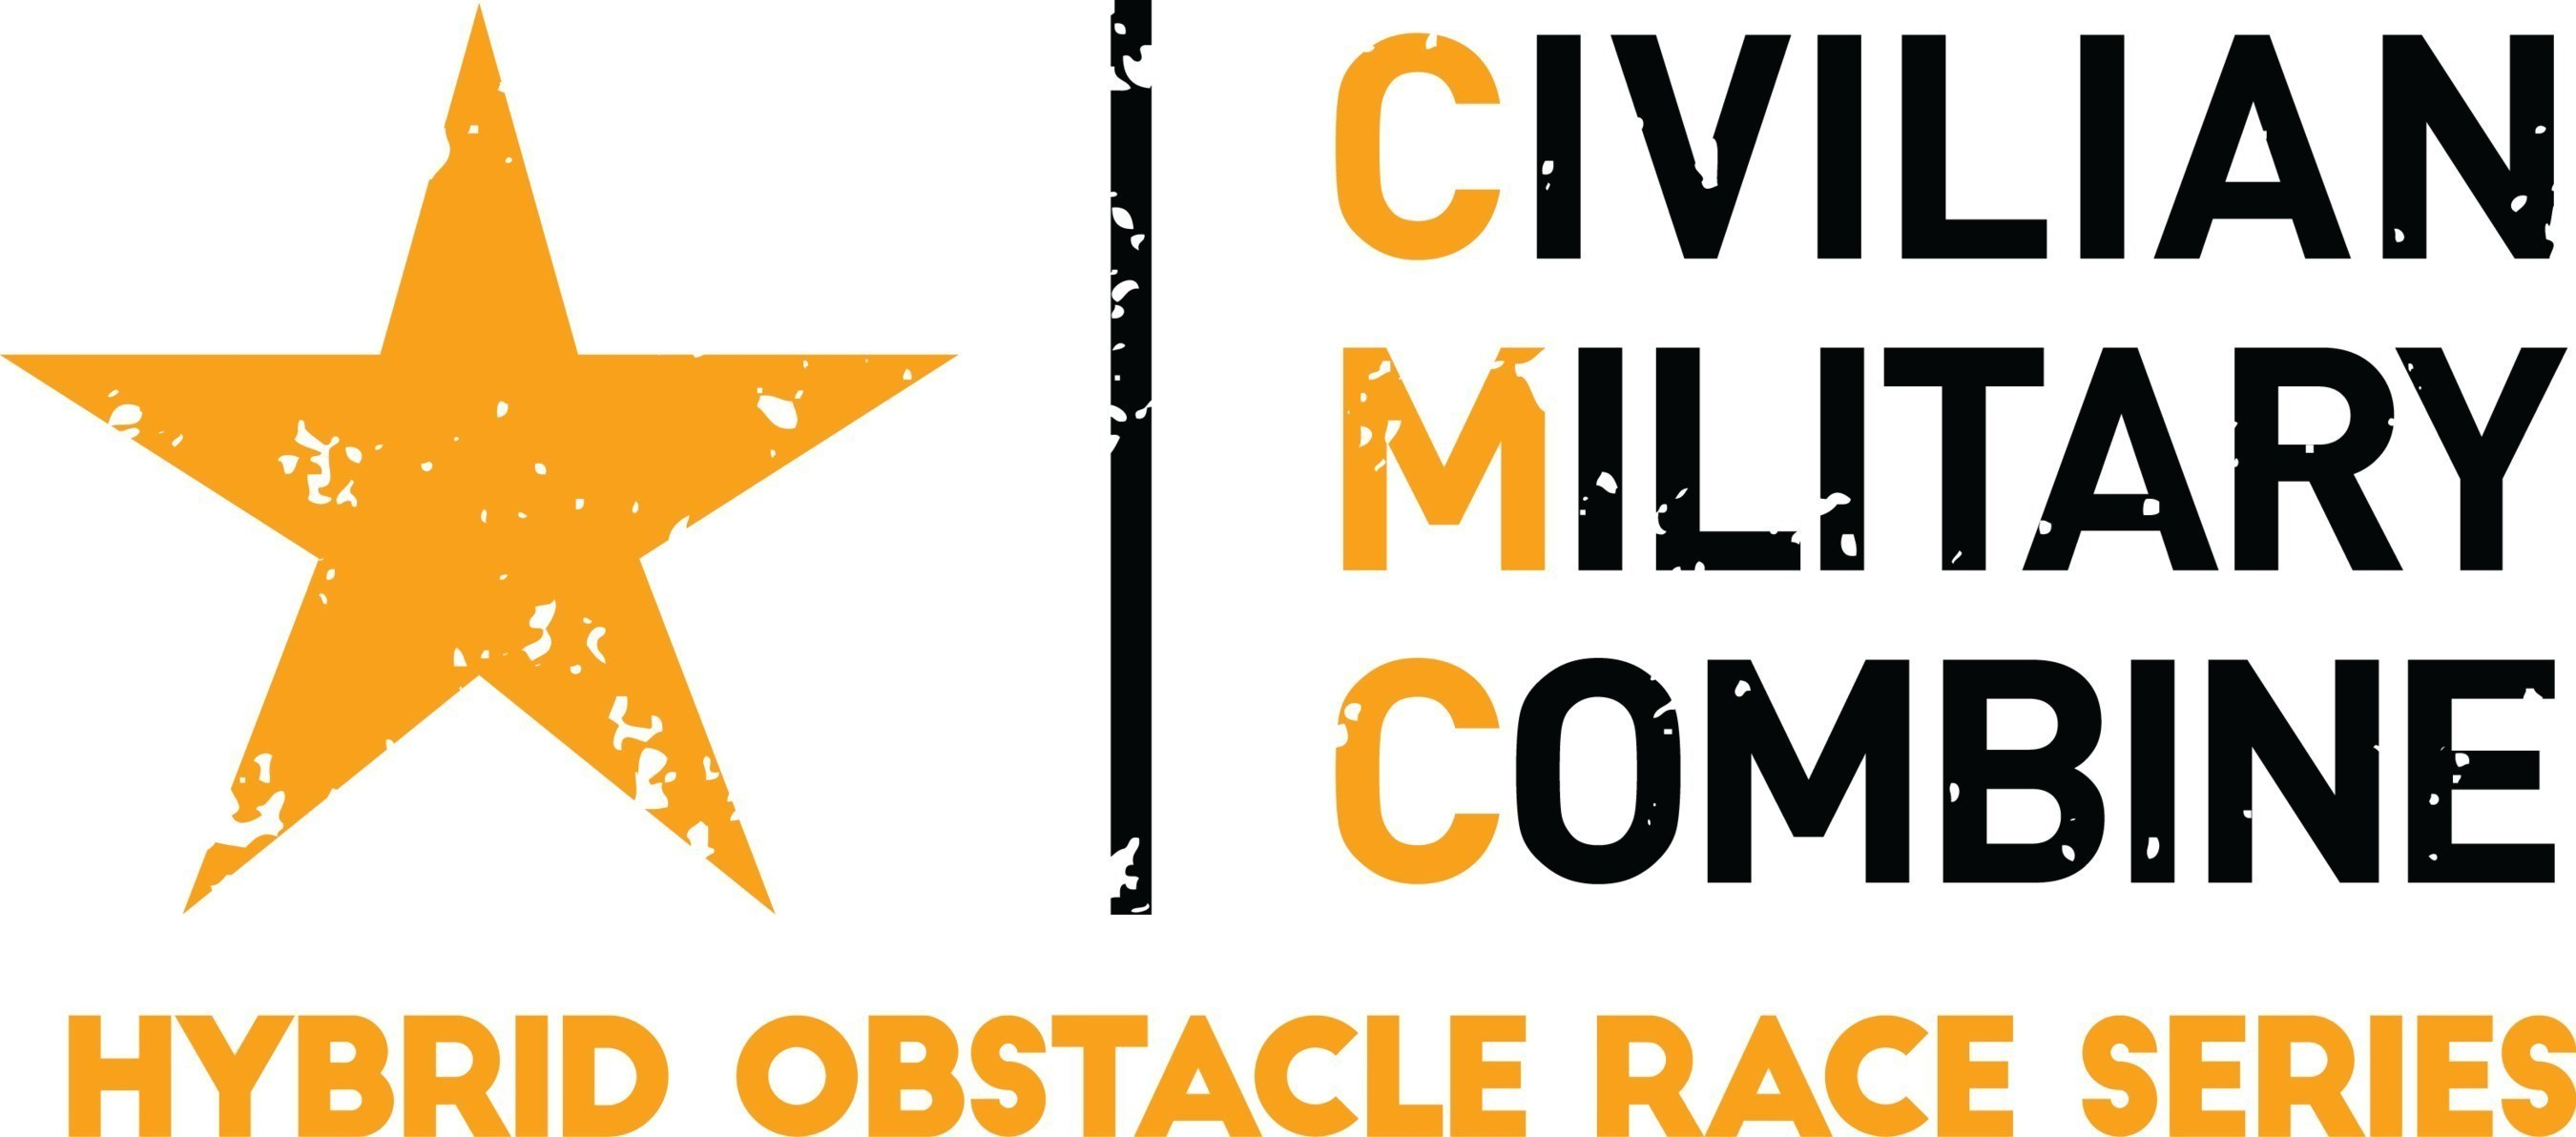 "CMC is the original ""hybrid"" obstacle course race that exclusively combines a WOD strength training element - The PIT(TM) - followed by a five mile race with 25+ military grade obstacles. For all who live a life of athleticism, community and patriotism."